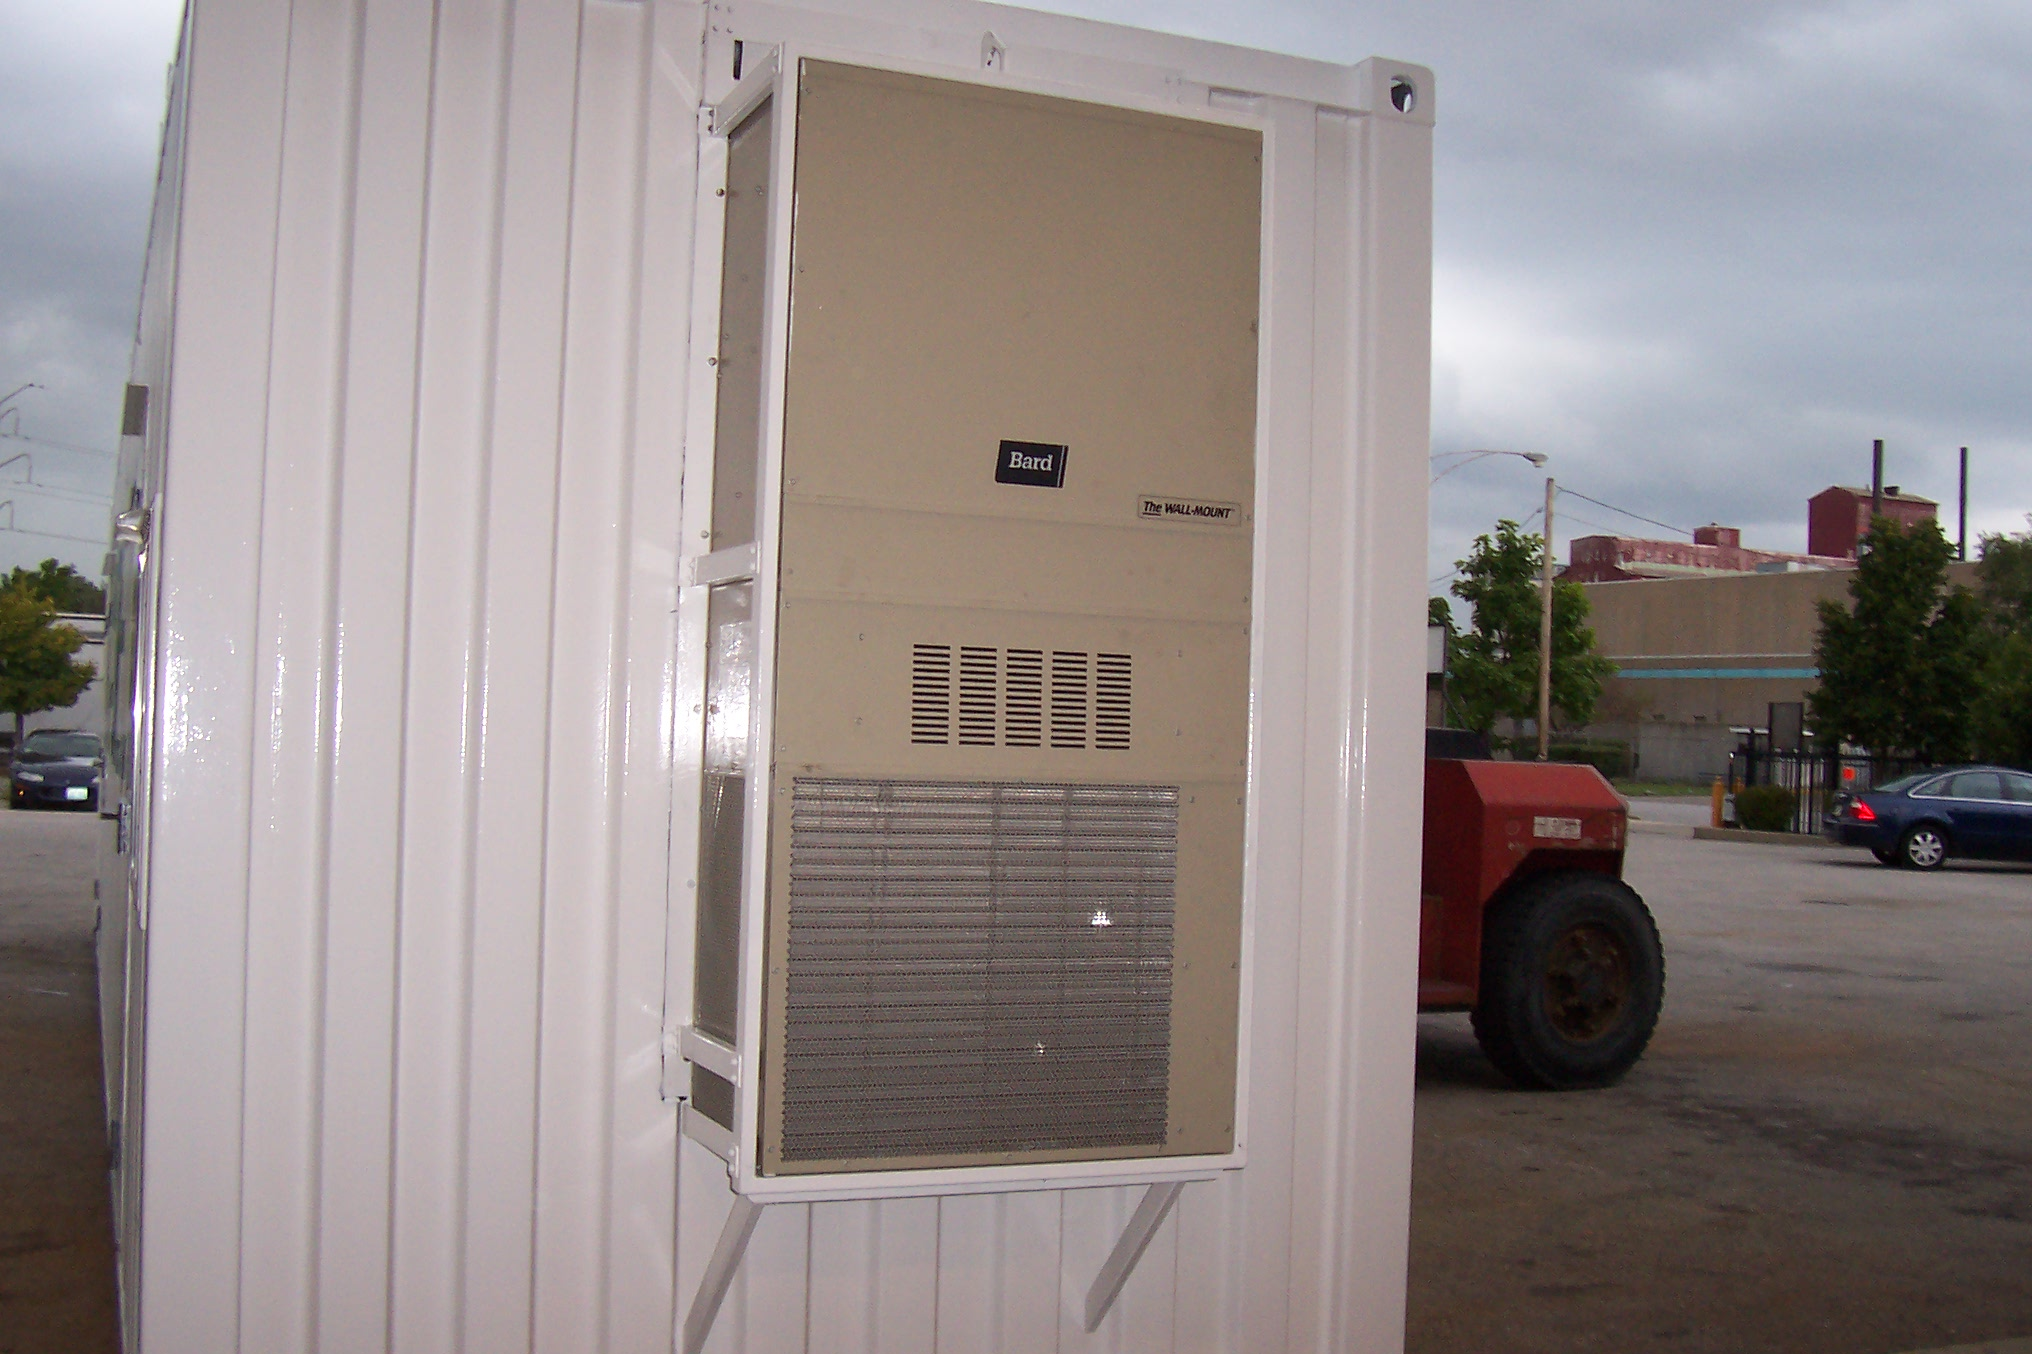 Commercial-grade heating and cooling unit